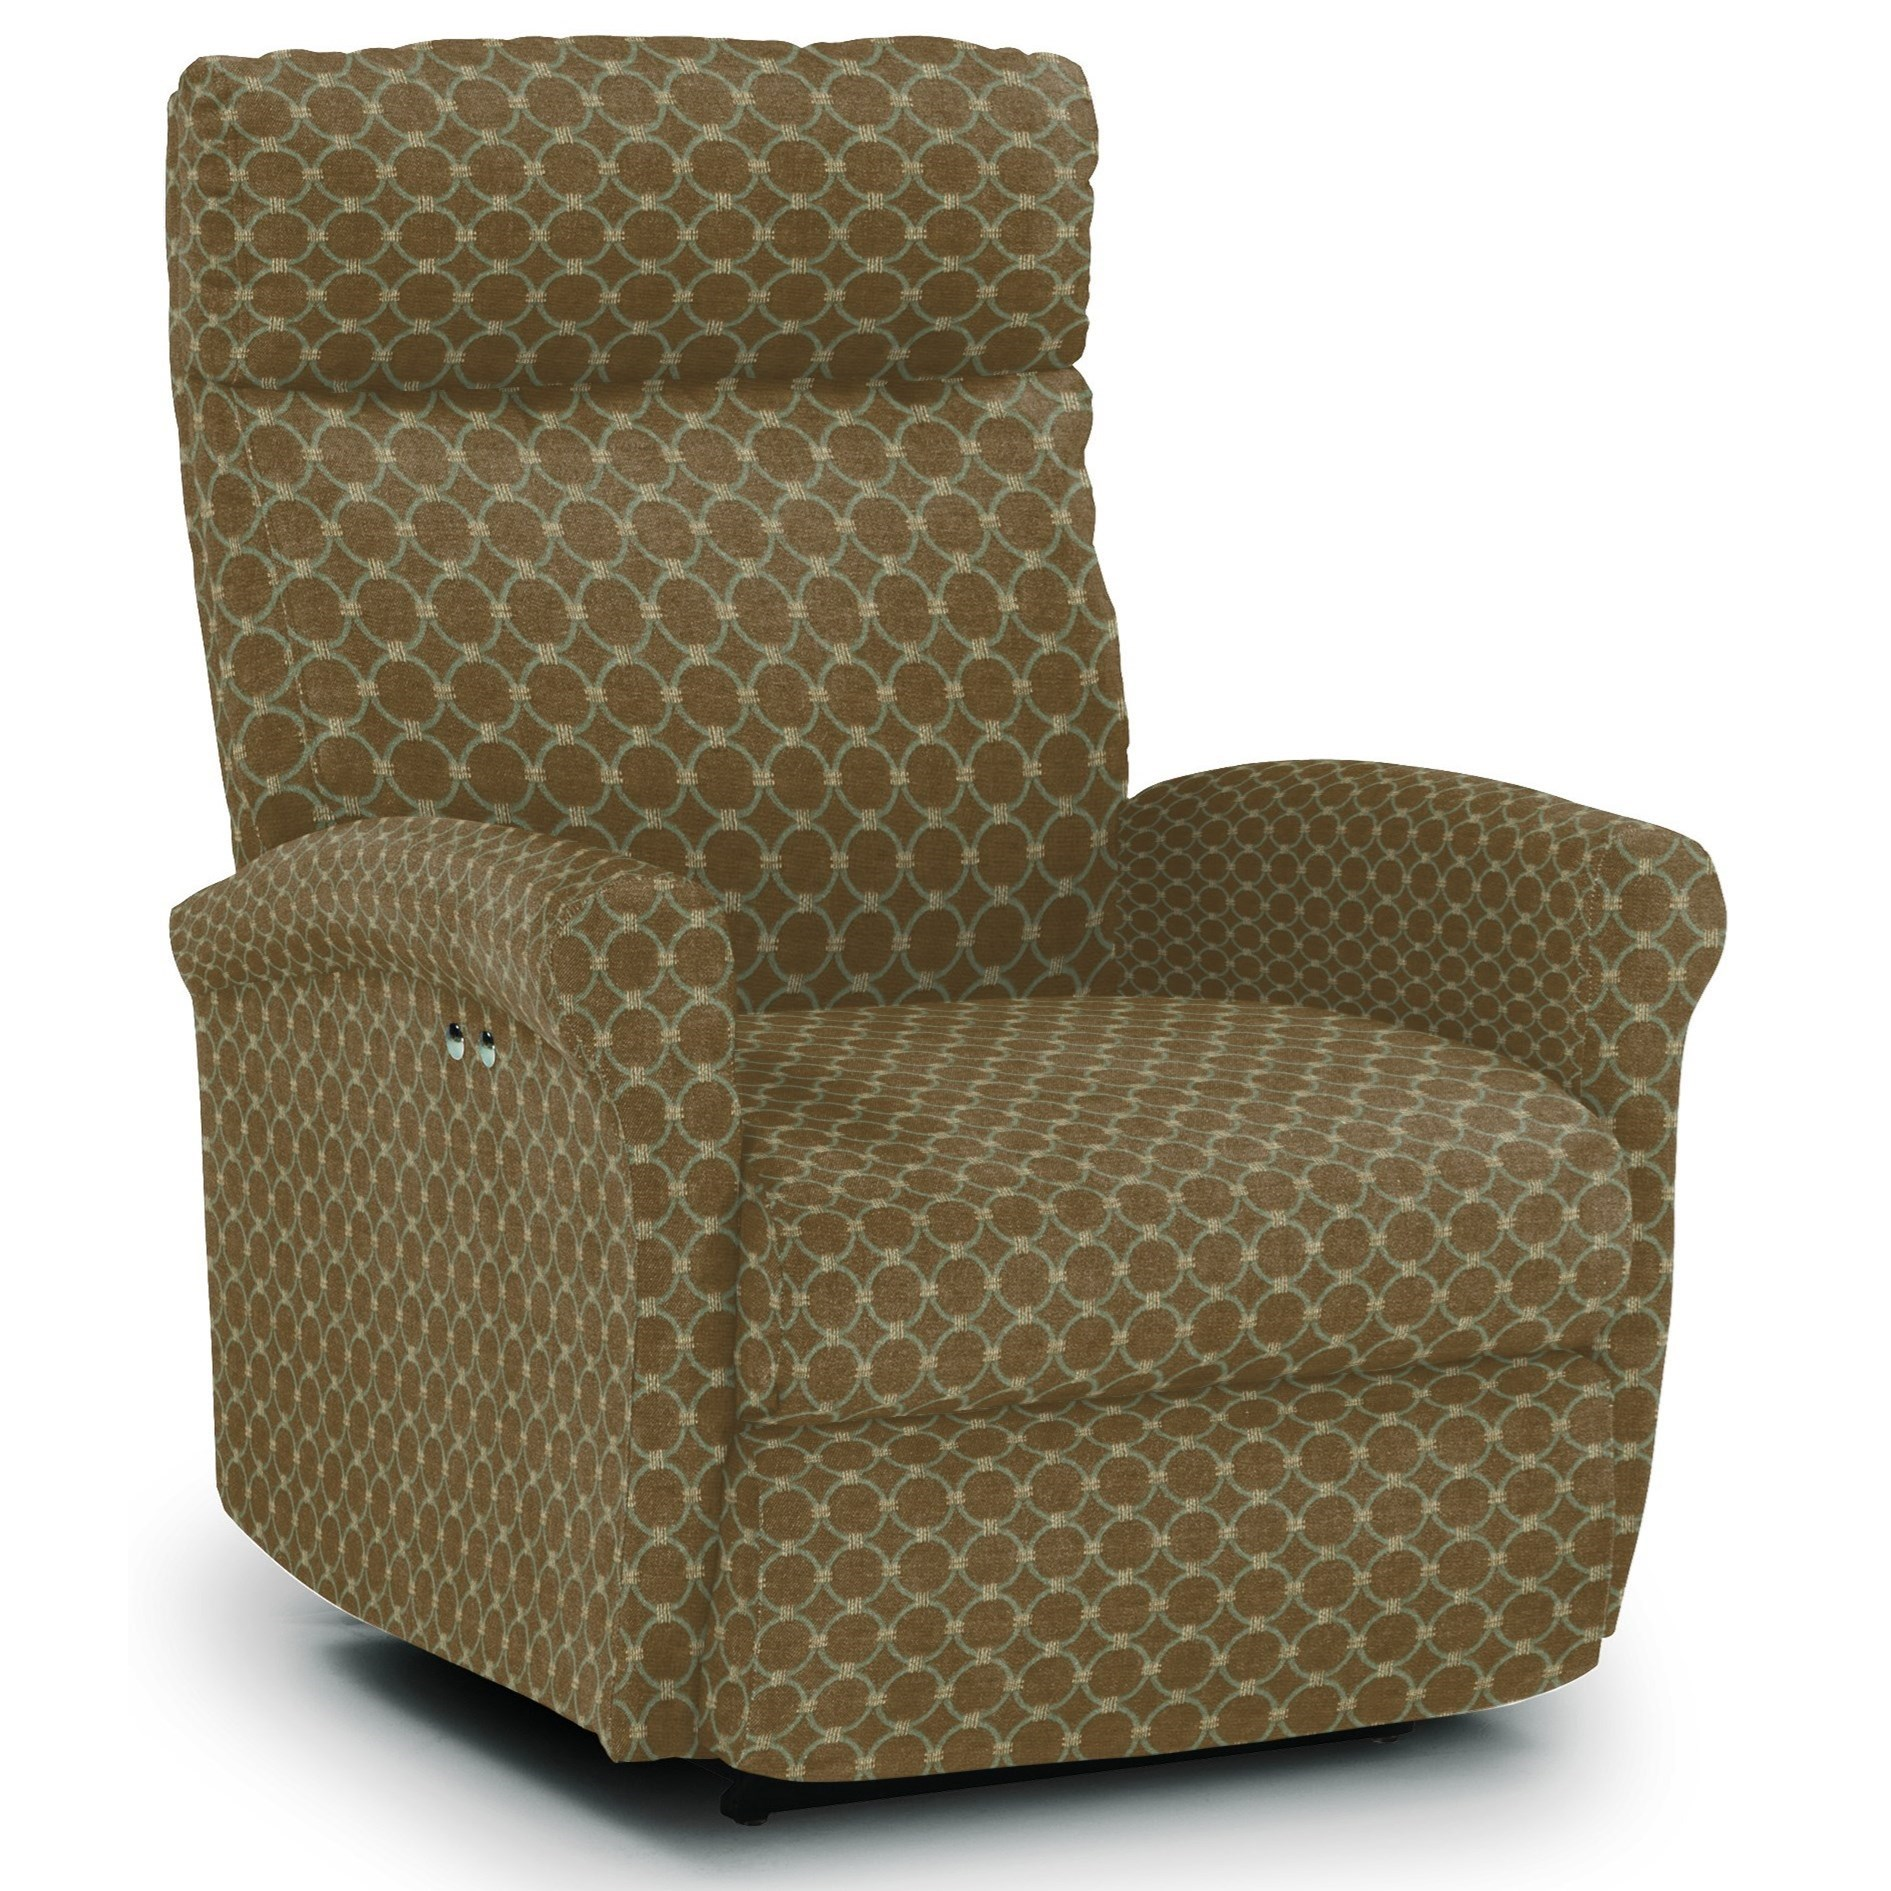 Best Home Furnishings Recliners - Petite Swivel Glider Recliner - Item Number: -2060136600-25796